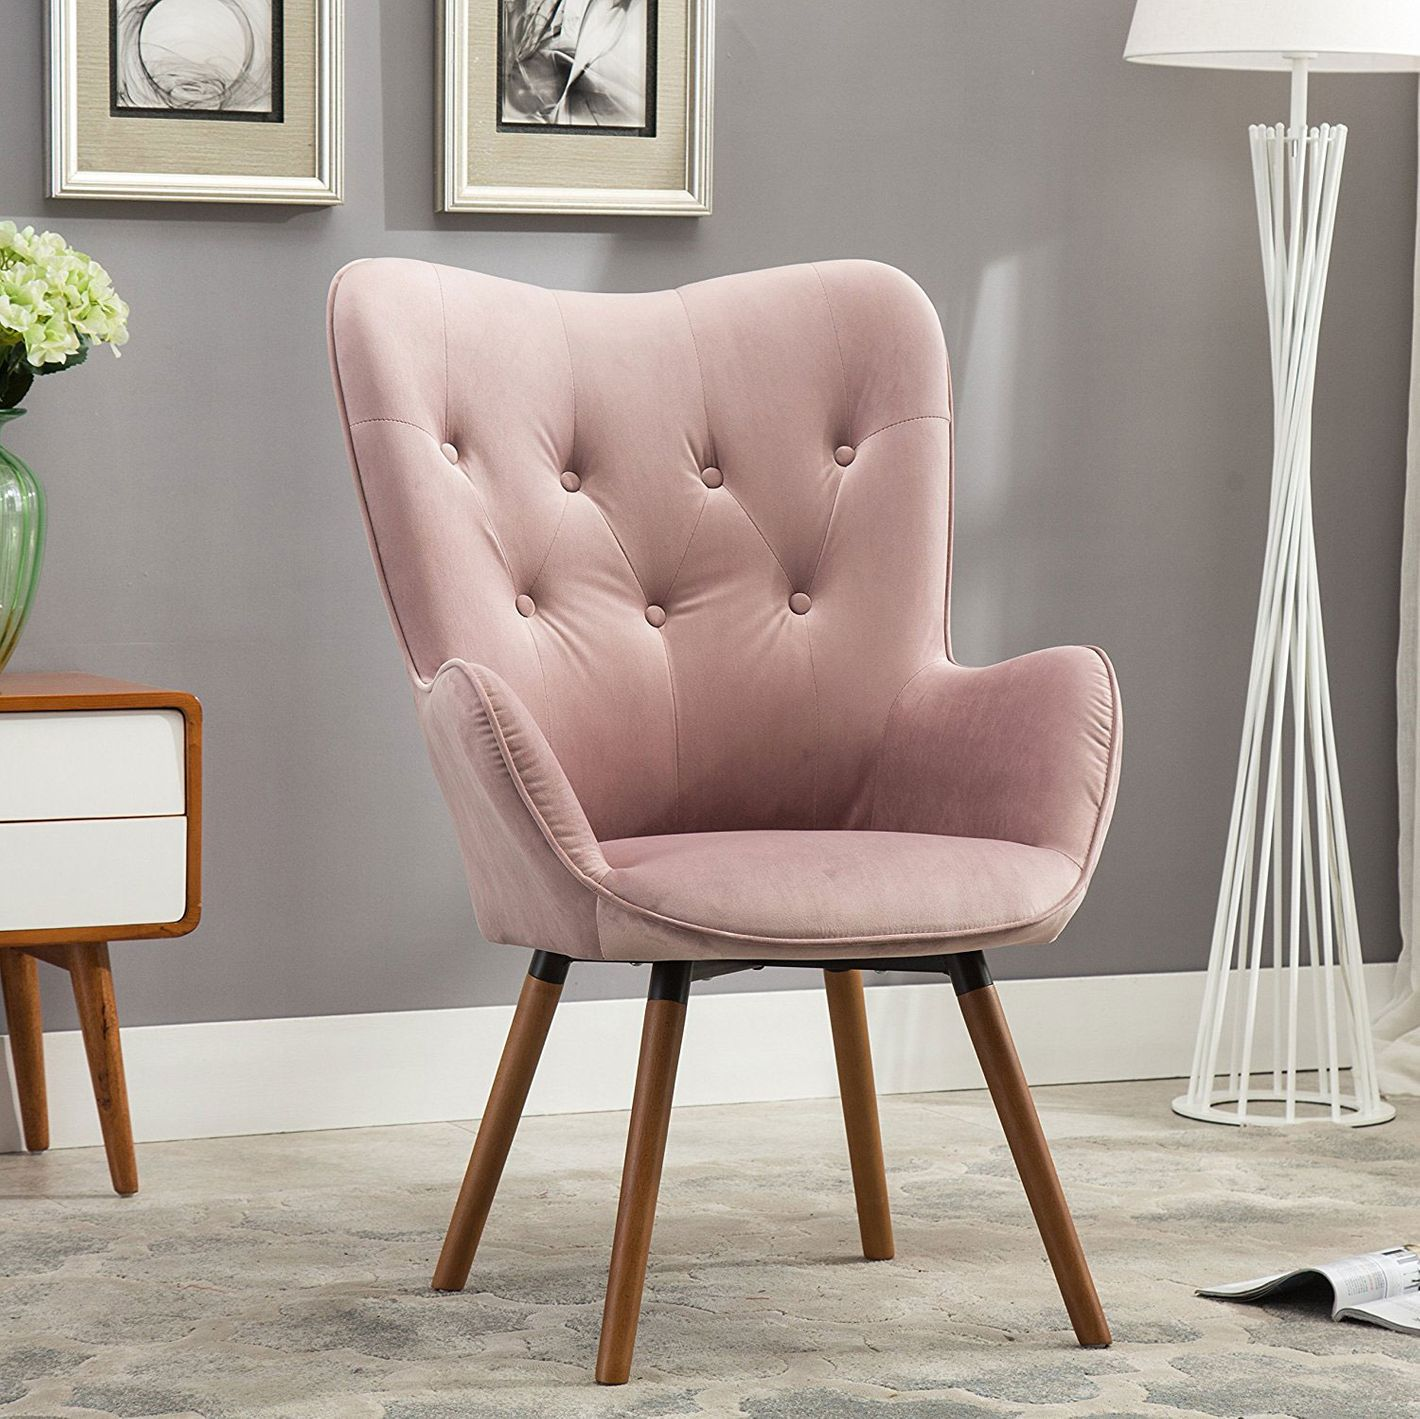 31 millennial pink things you can buy on amazon - Amazon bedroom chairs and stools ...